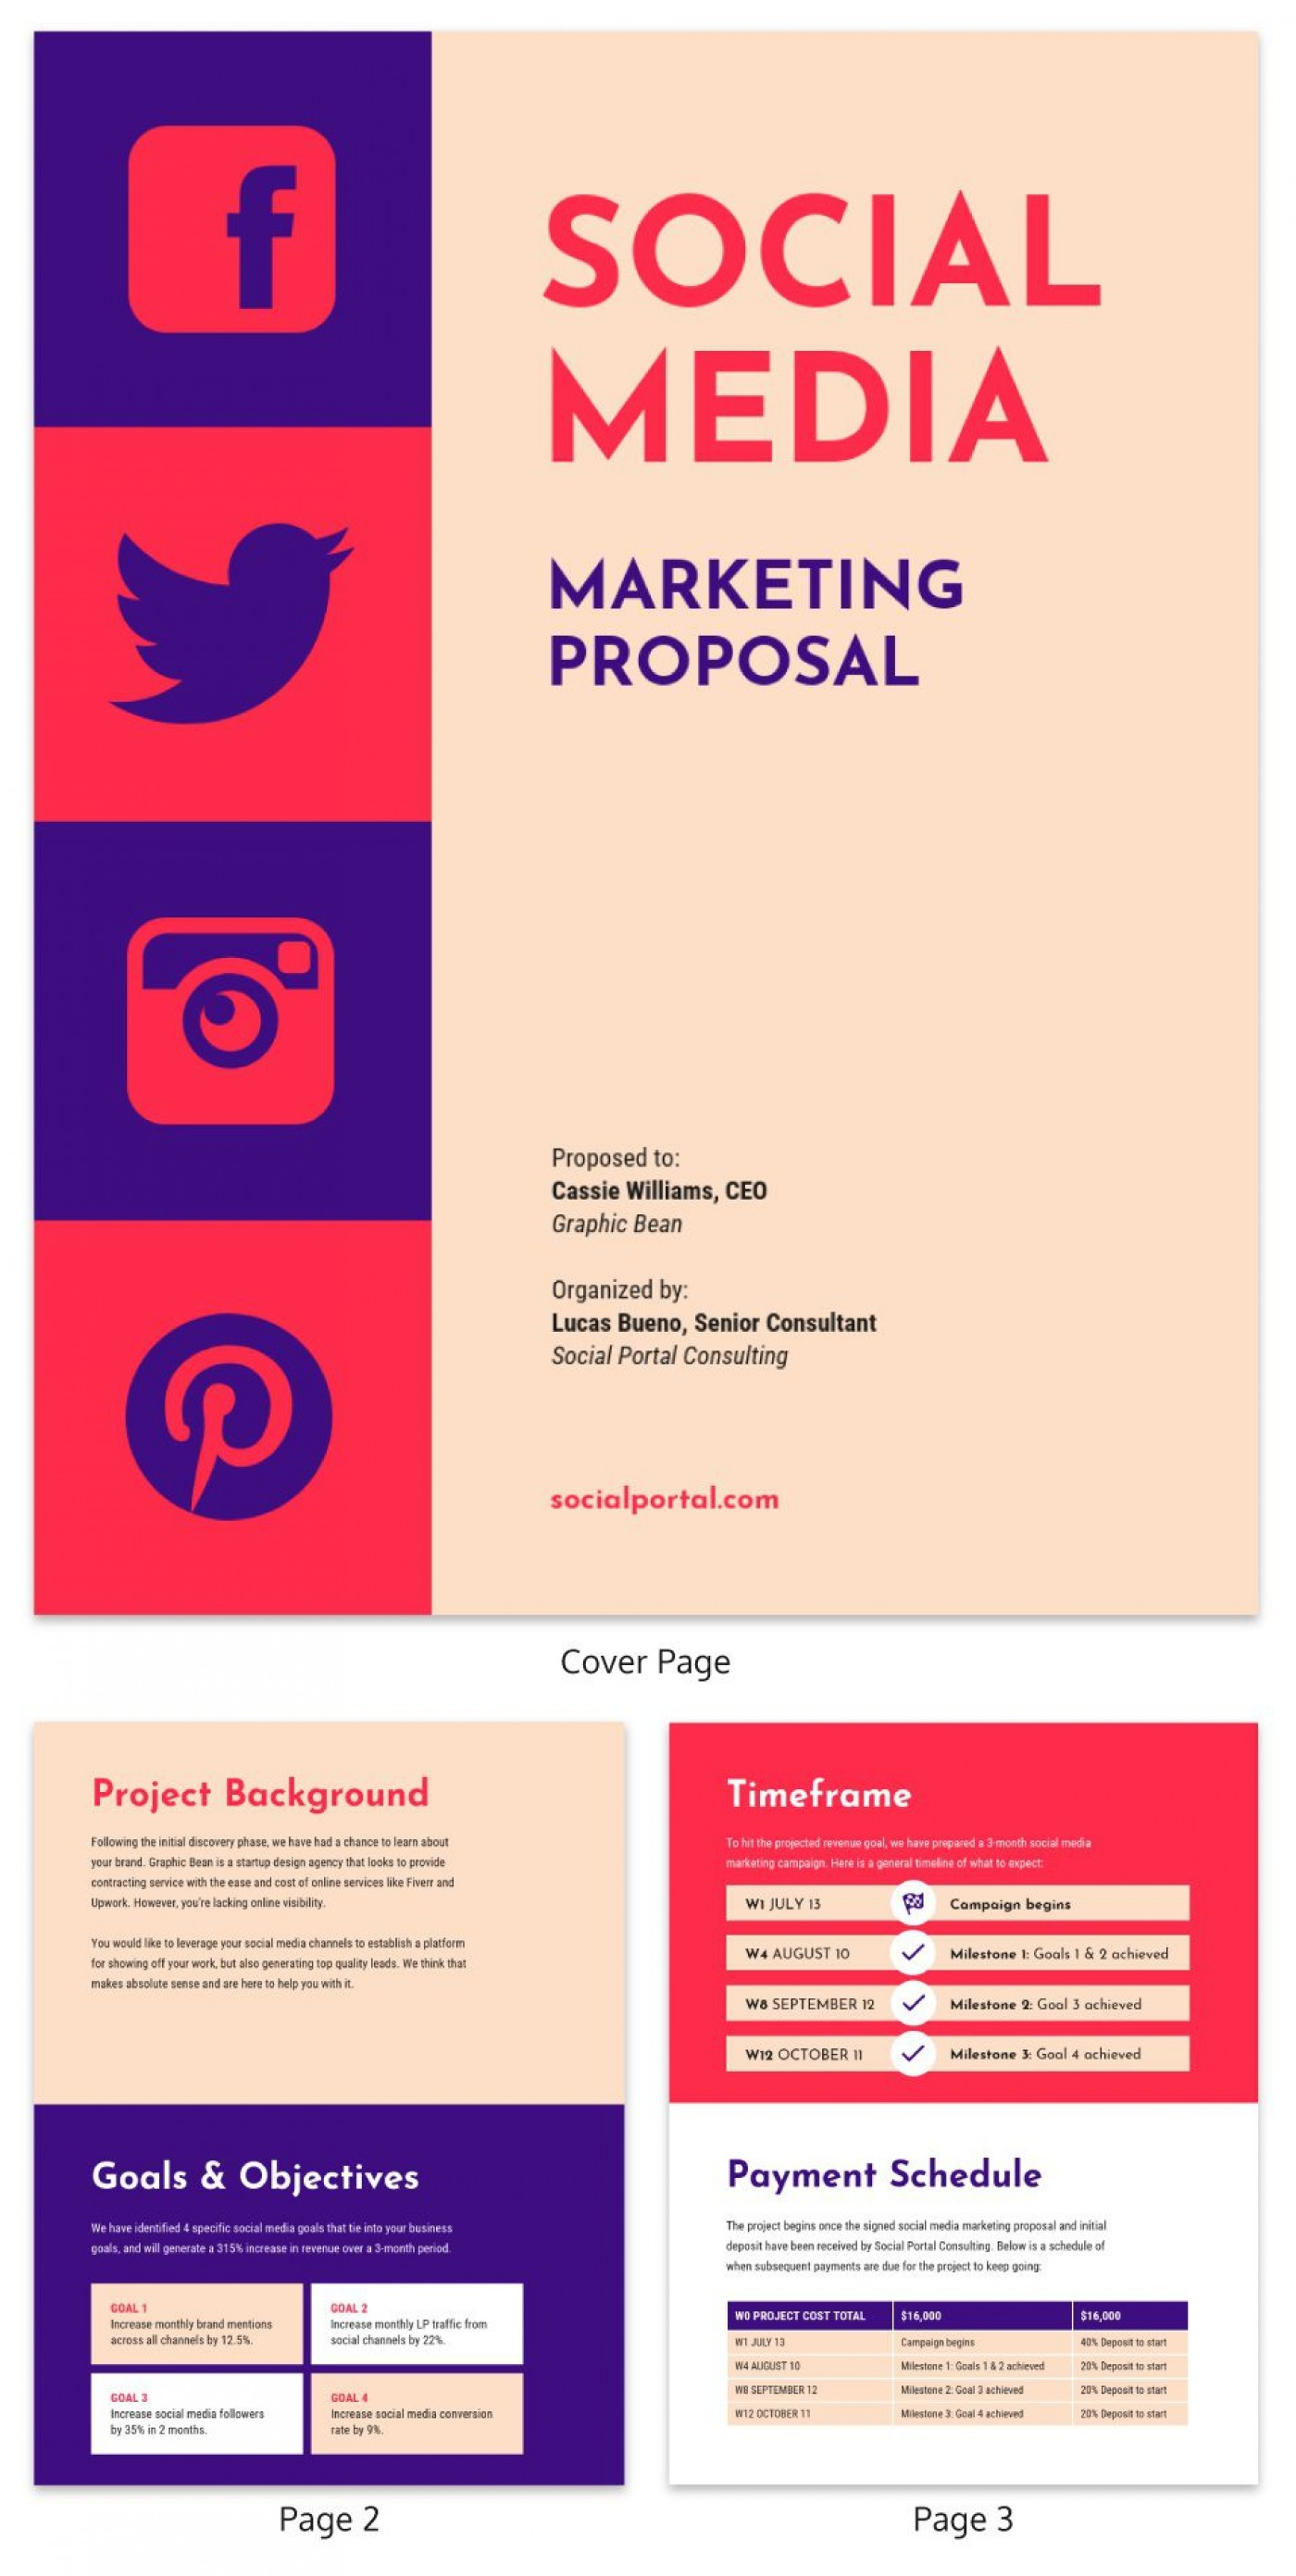 006 Unique Social Media Proposal Template High Resolution  Plan Sample Pdf 20181400